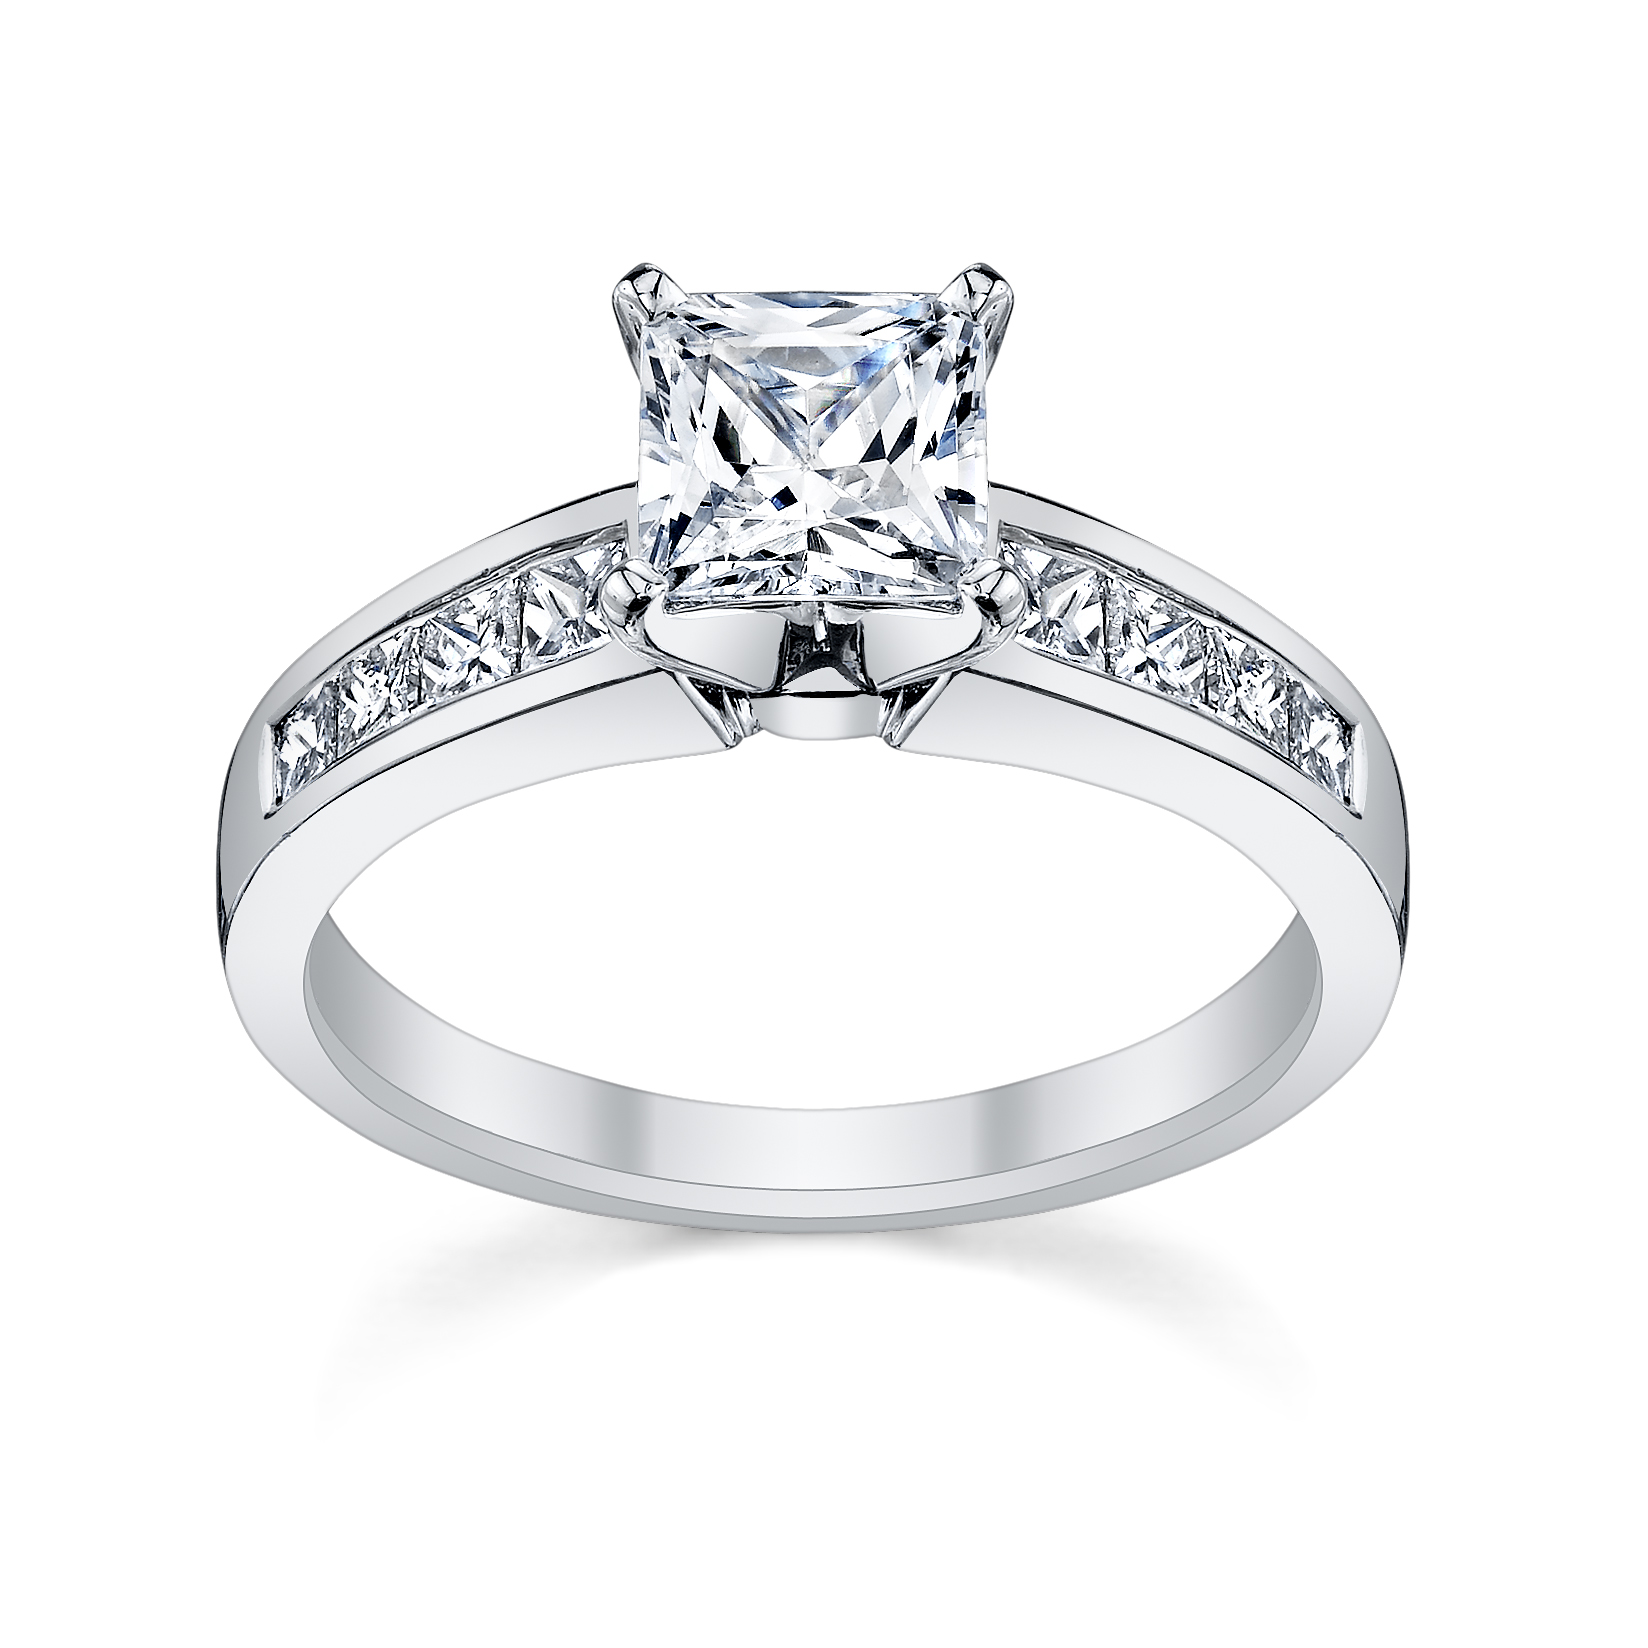 verragio stone com by images engagement ring best rings bridesandrings wedding pinterest on princess cut